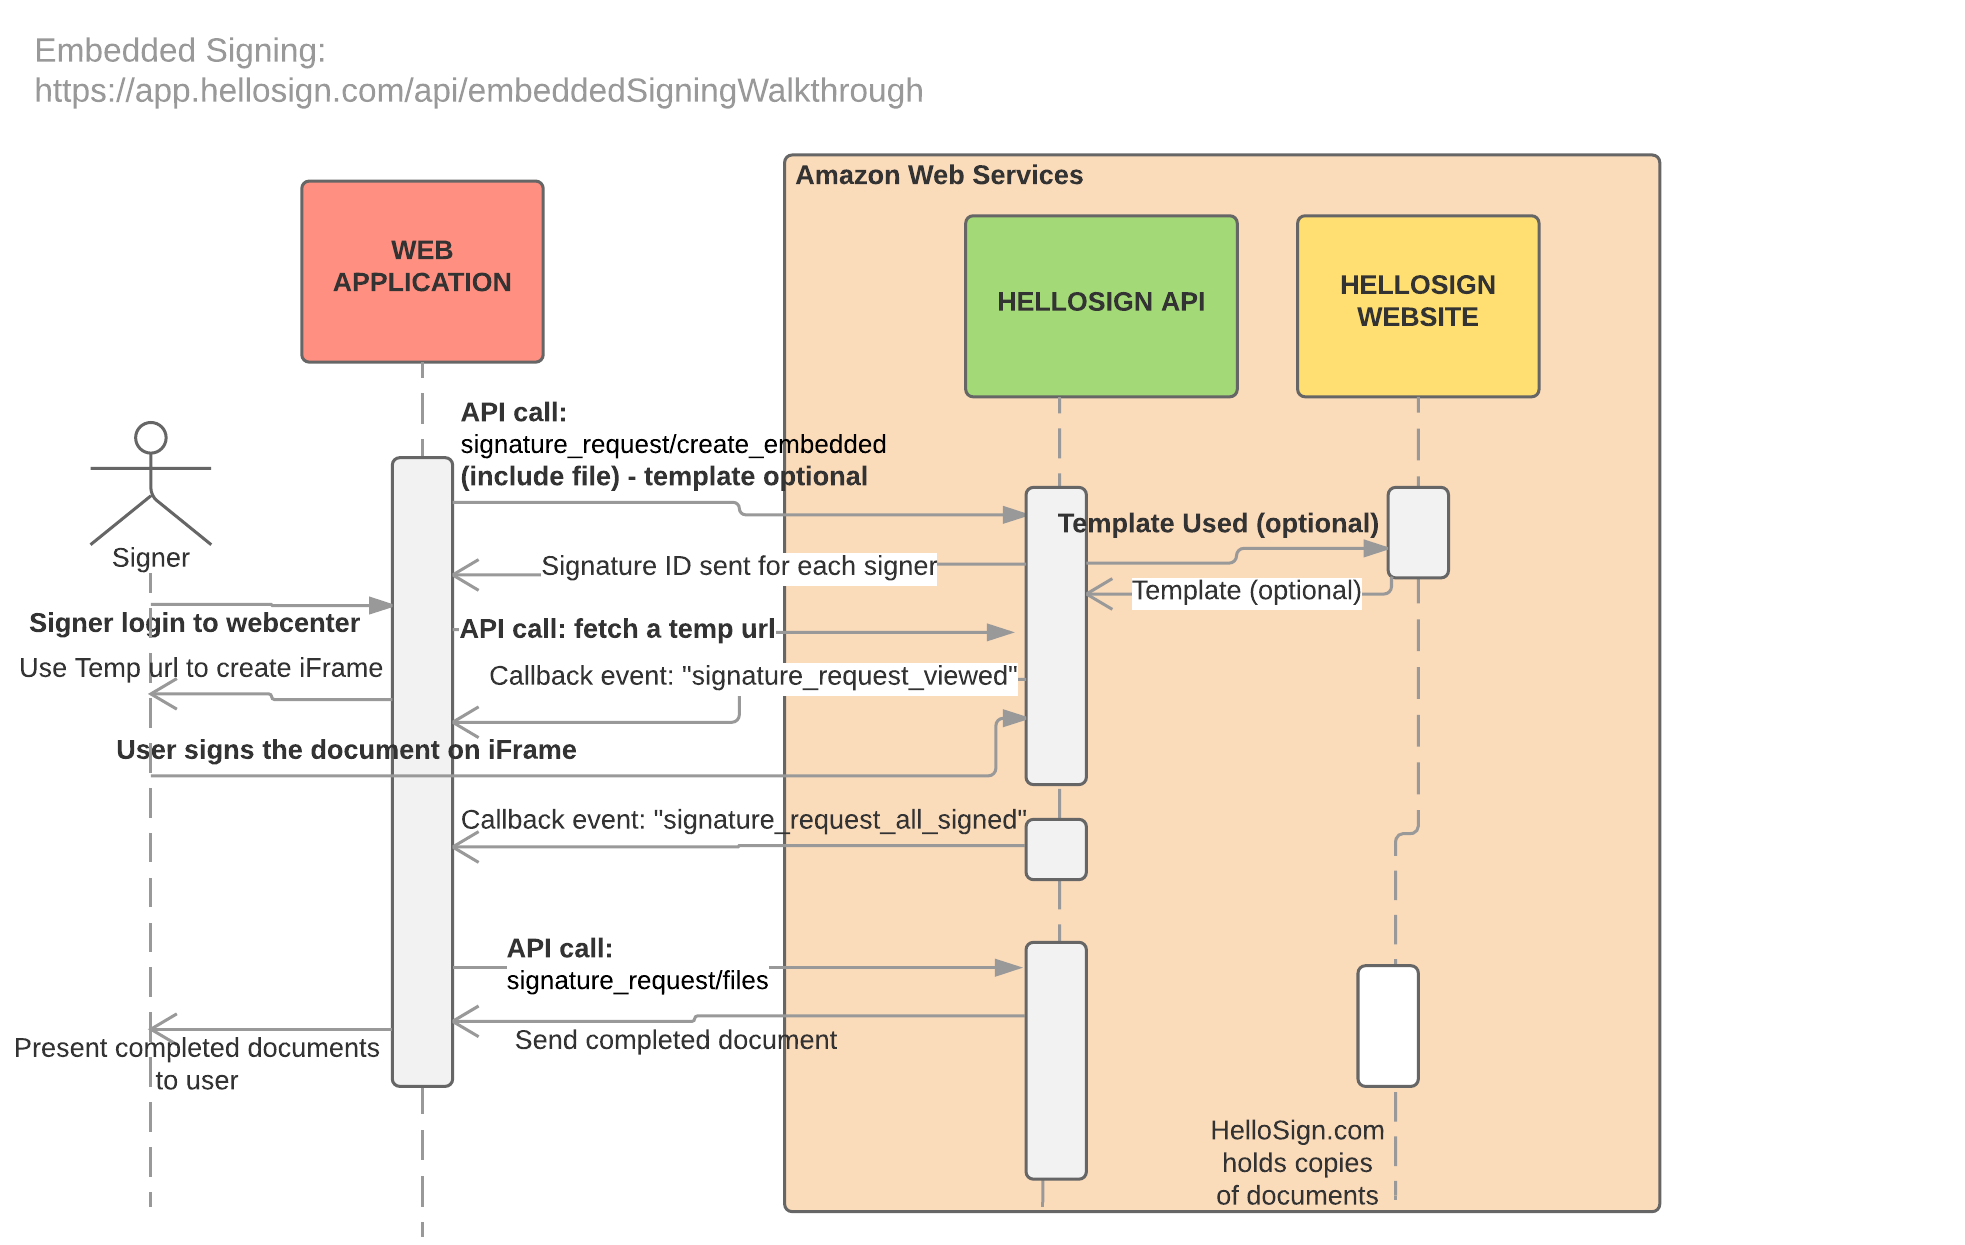 image result for how to represent an api call in sequence diagram [ 1965 x 1245 Pixel ]